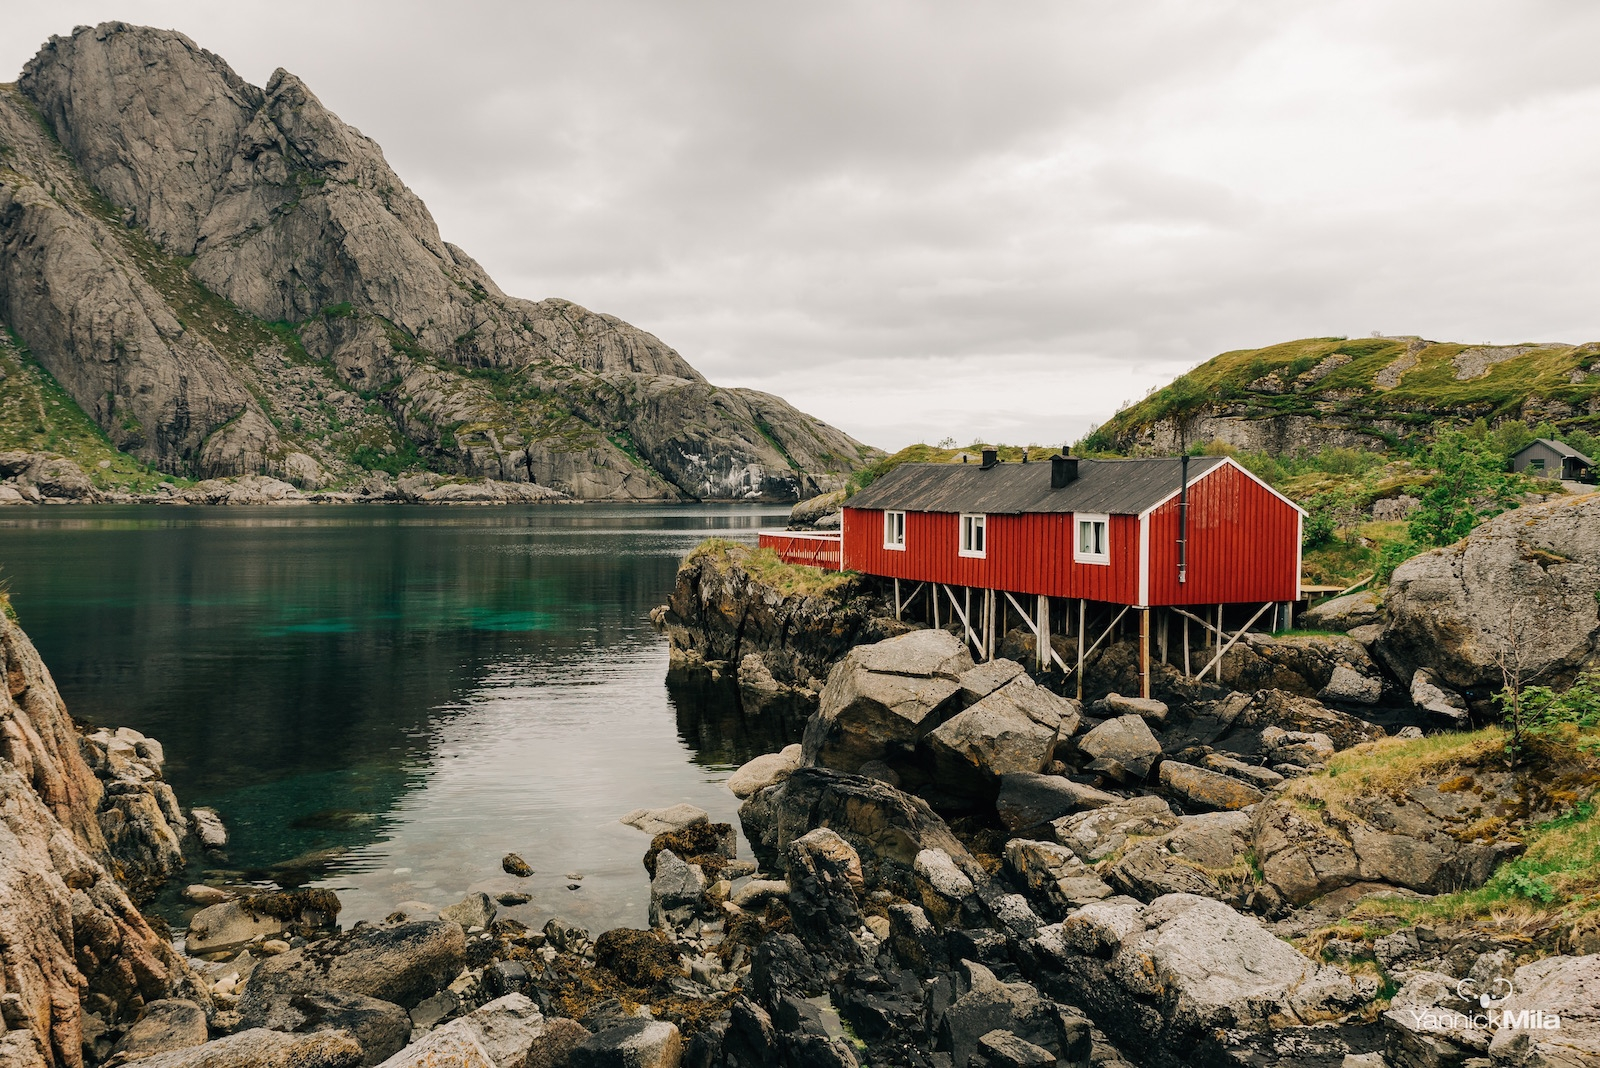 Lost in Lofoten